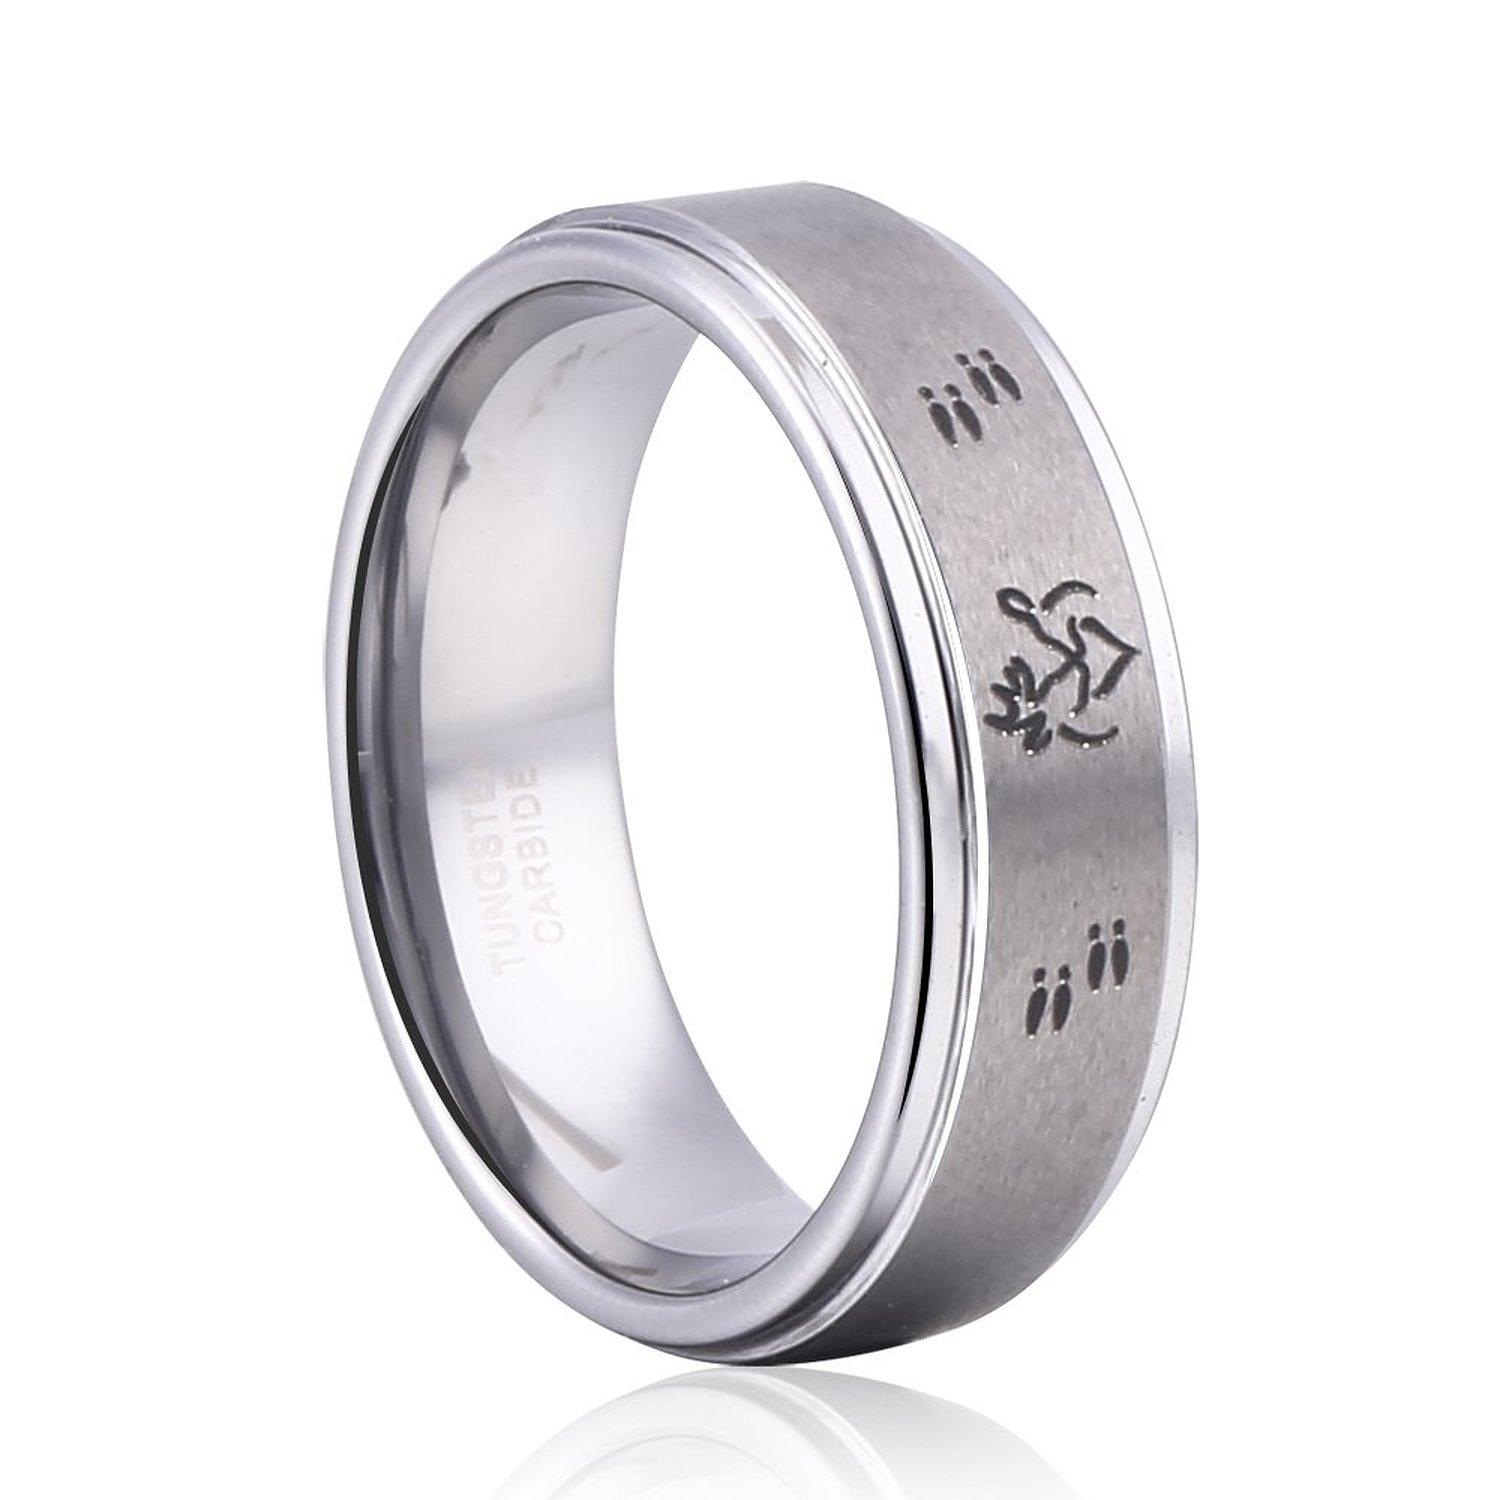 8mm tungsten carbide ring jewelry deer antler ring her buck his